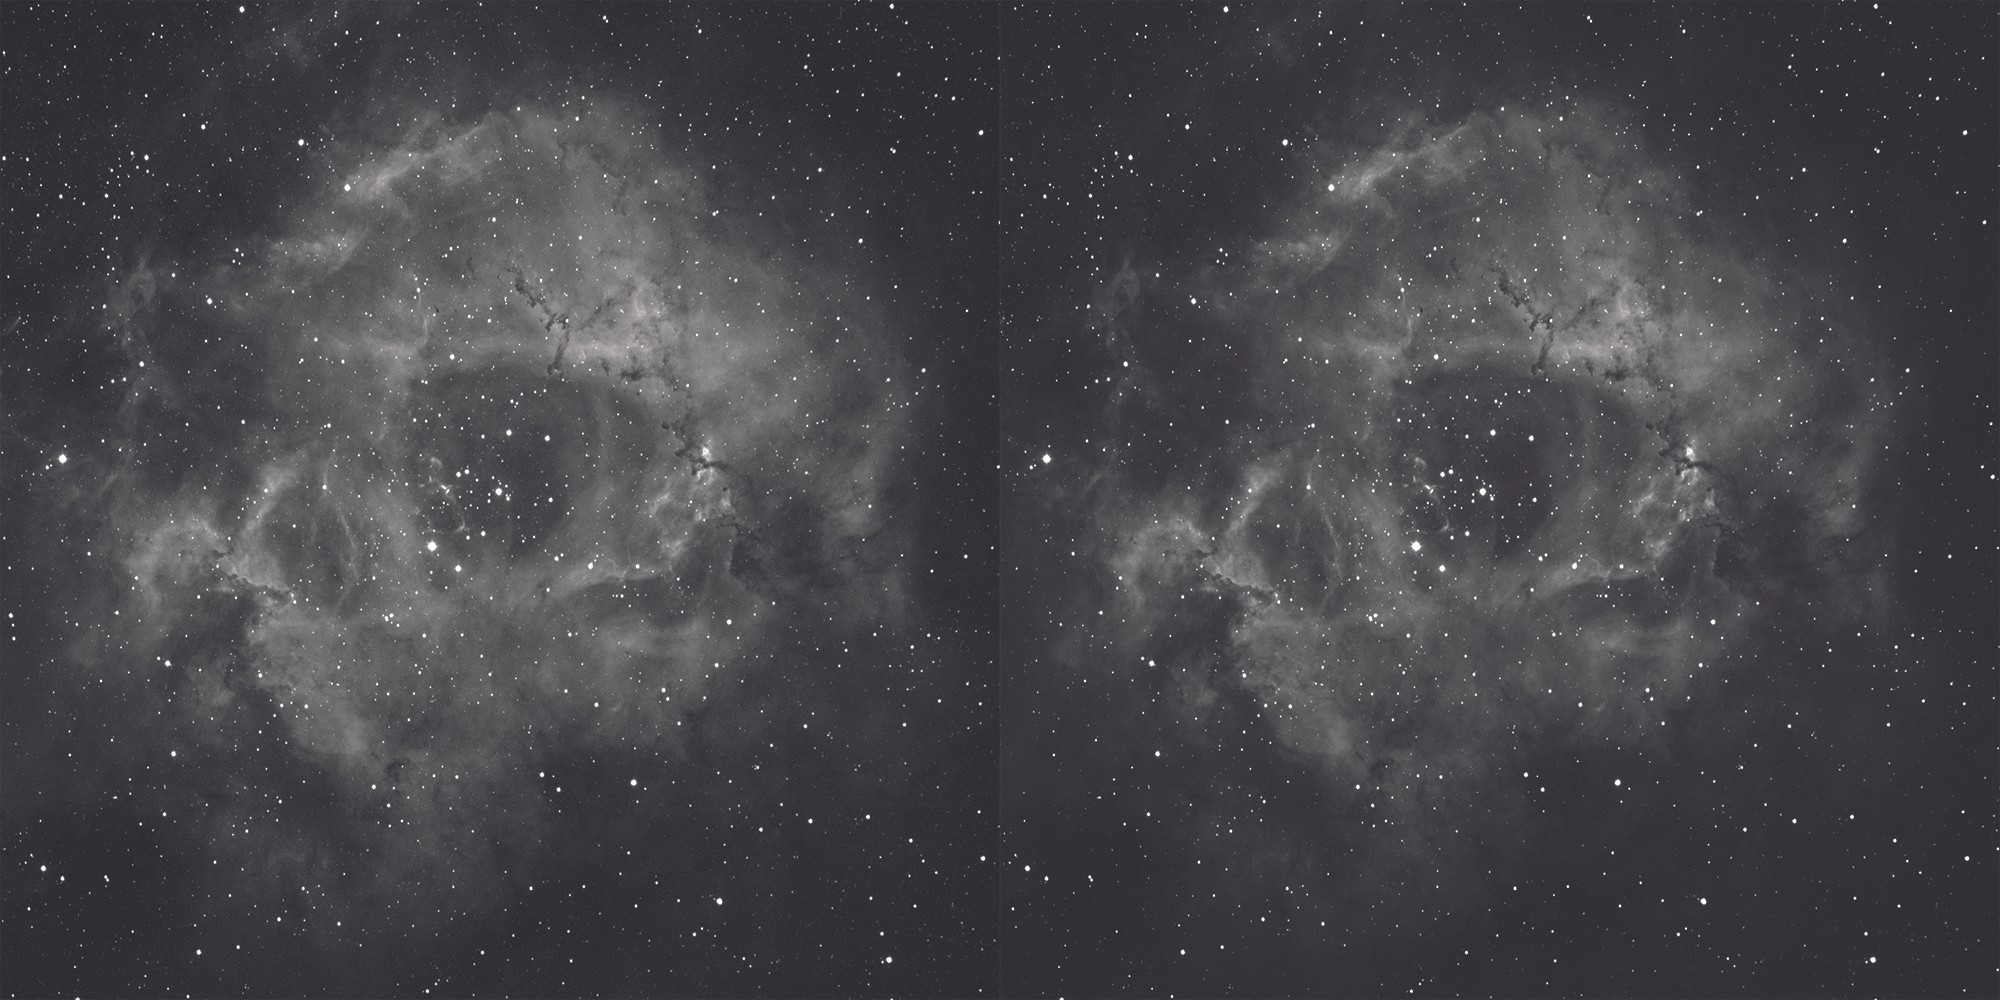 The Rosette Nebula in hydrogen-alpha, before dark frame calibration (left) and with reduced thermal noise after it has been applied (right). Credit: Steve Richards